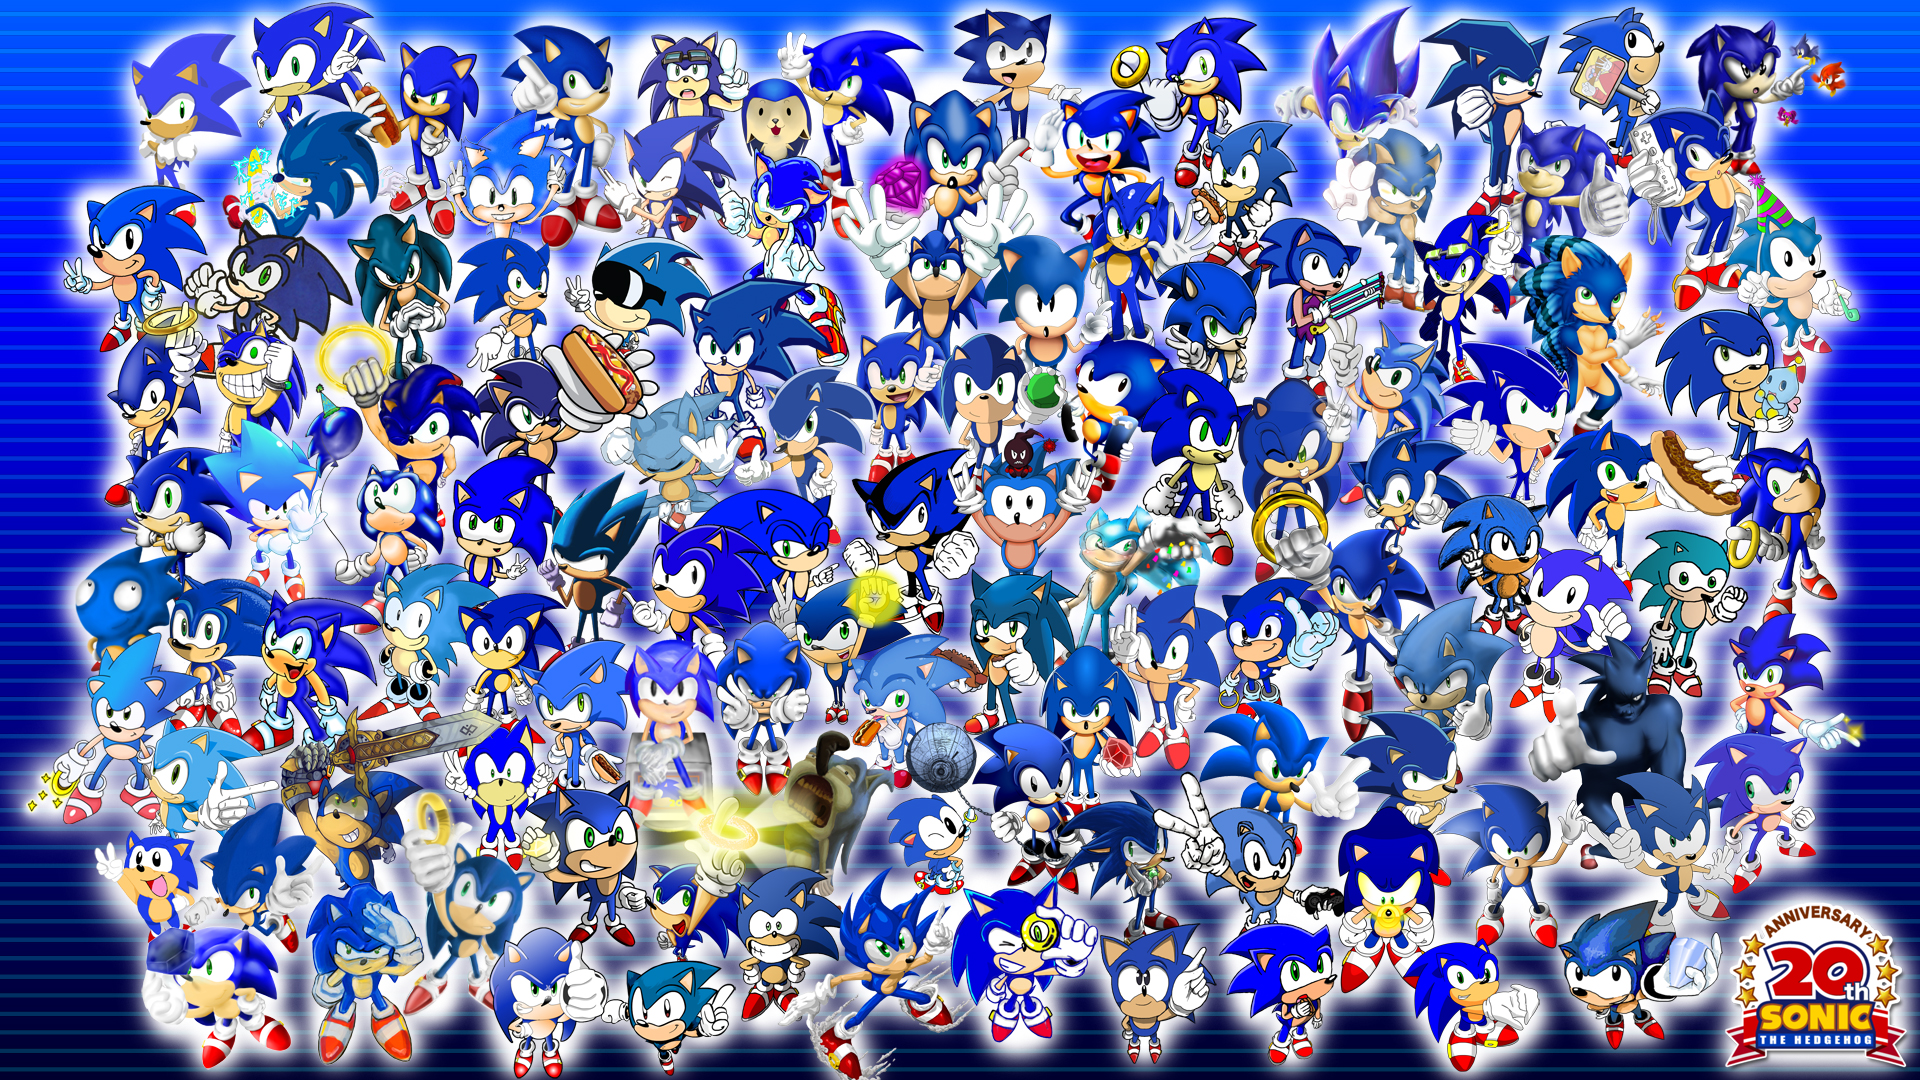 Project 20 Sonic Wallpaper Sonic The Hedgehog Wallpaper